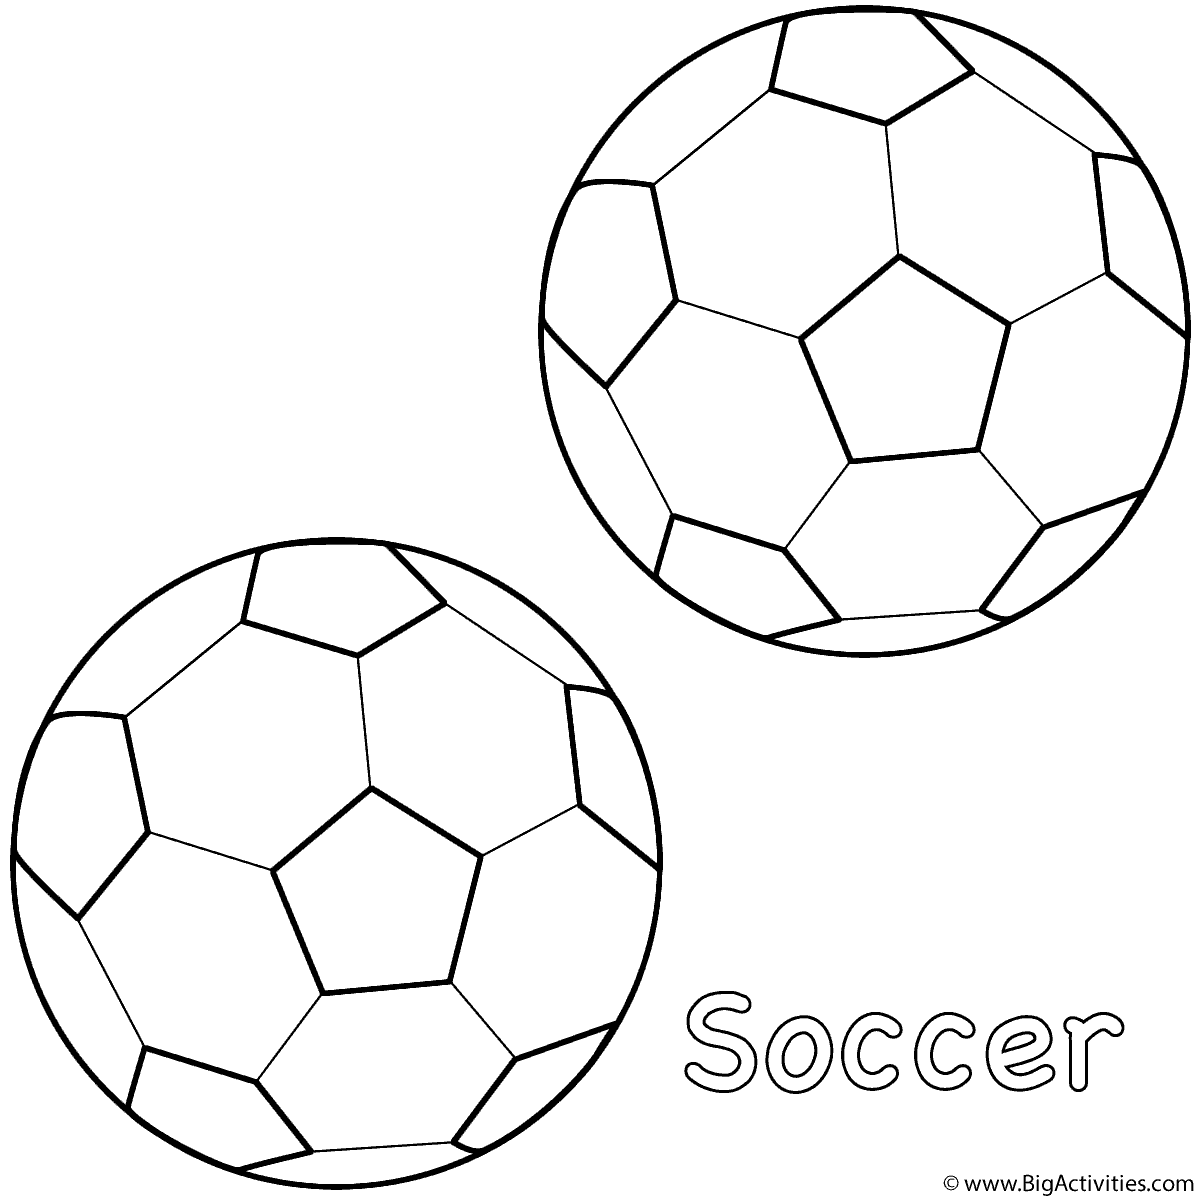 Soccer Balls Coloring Page Sports